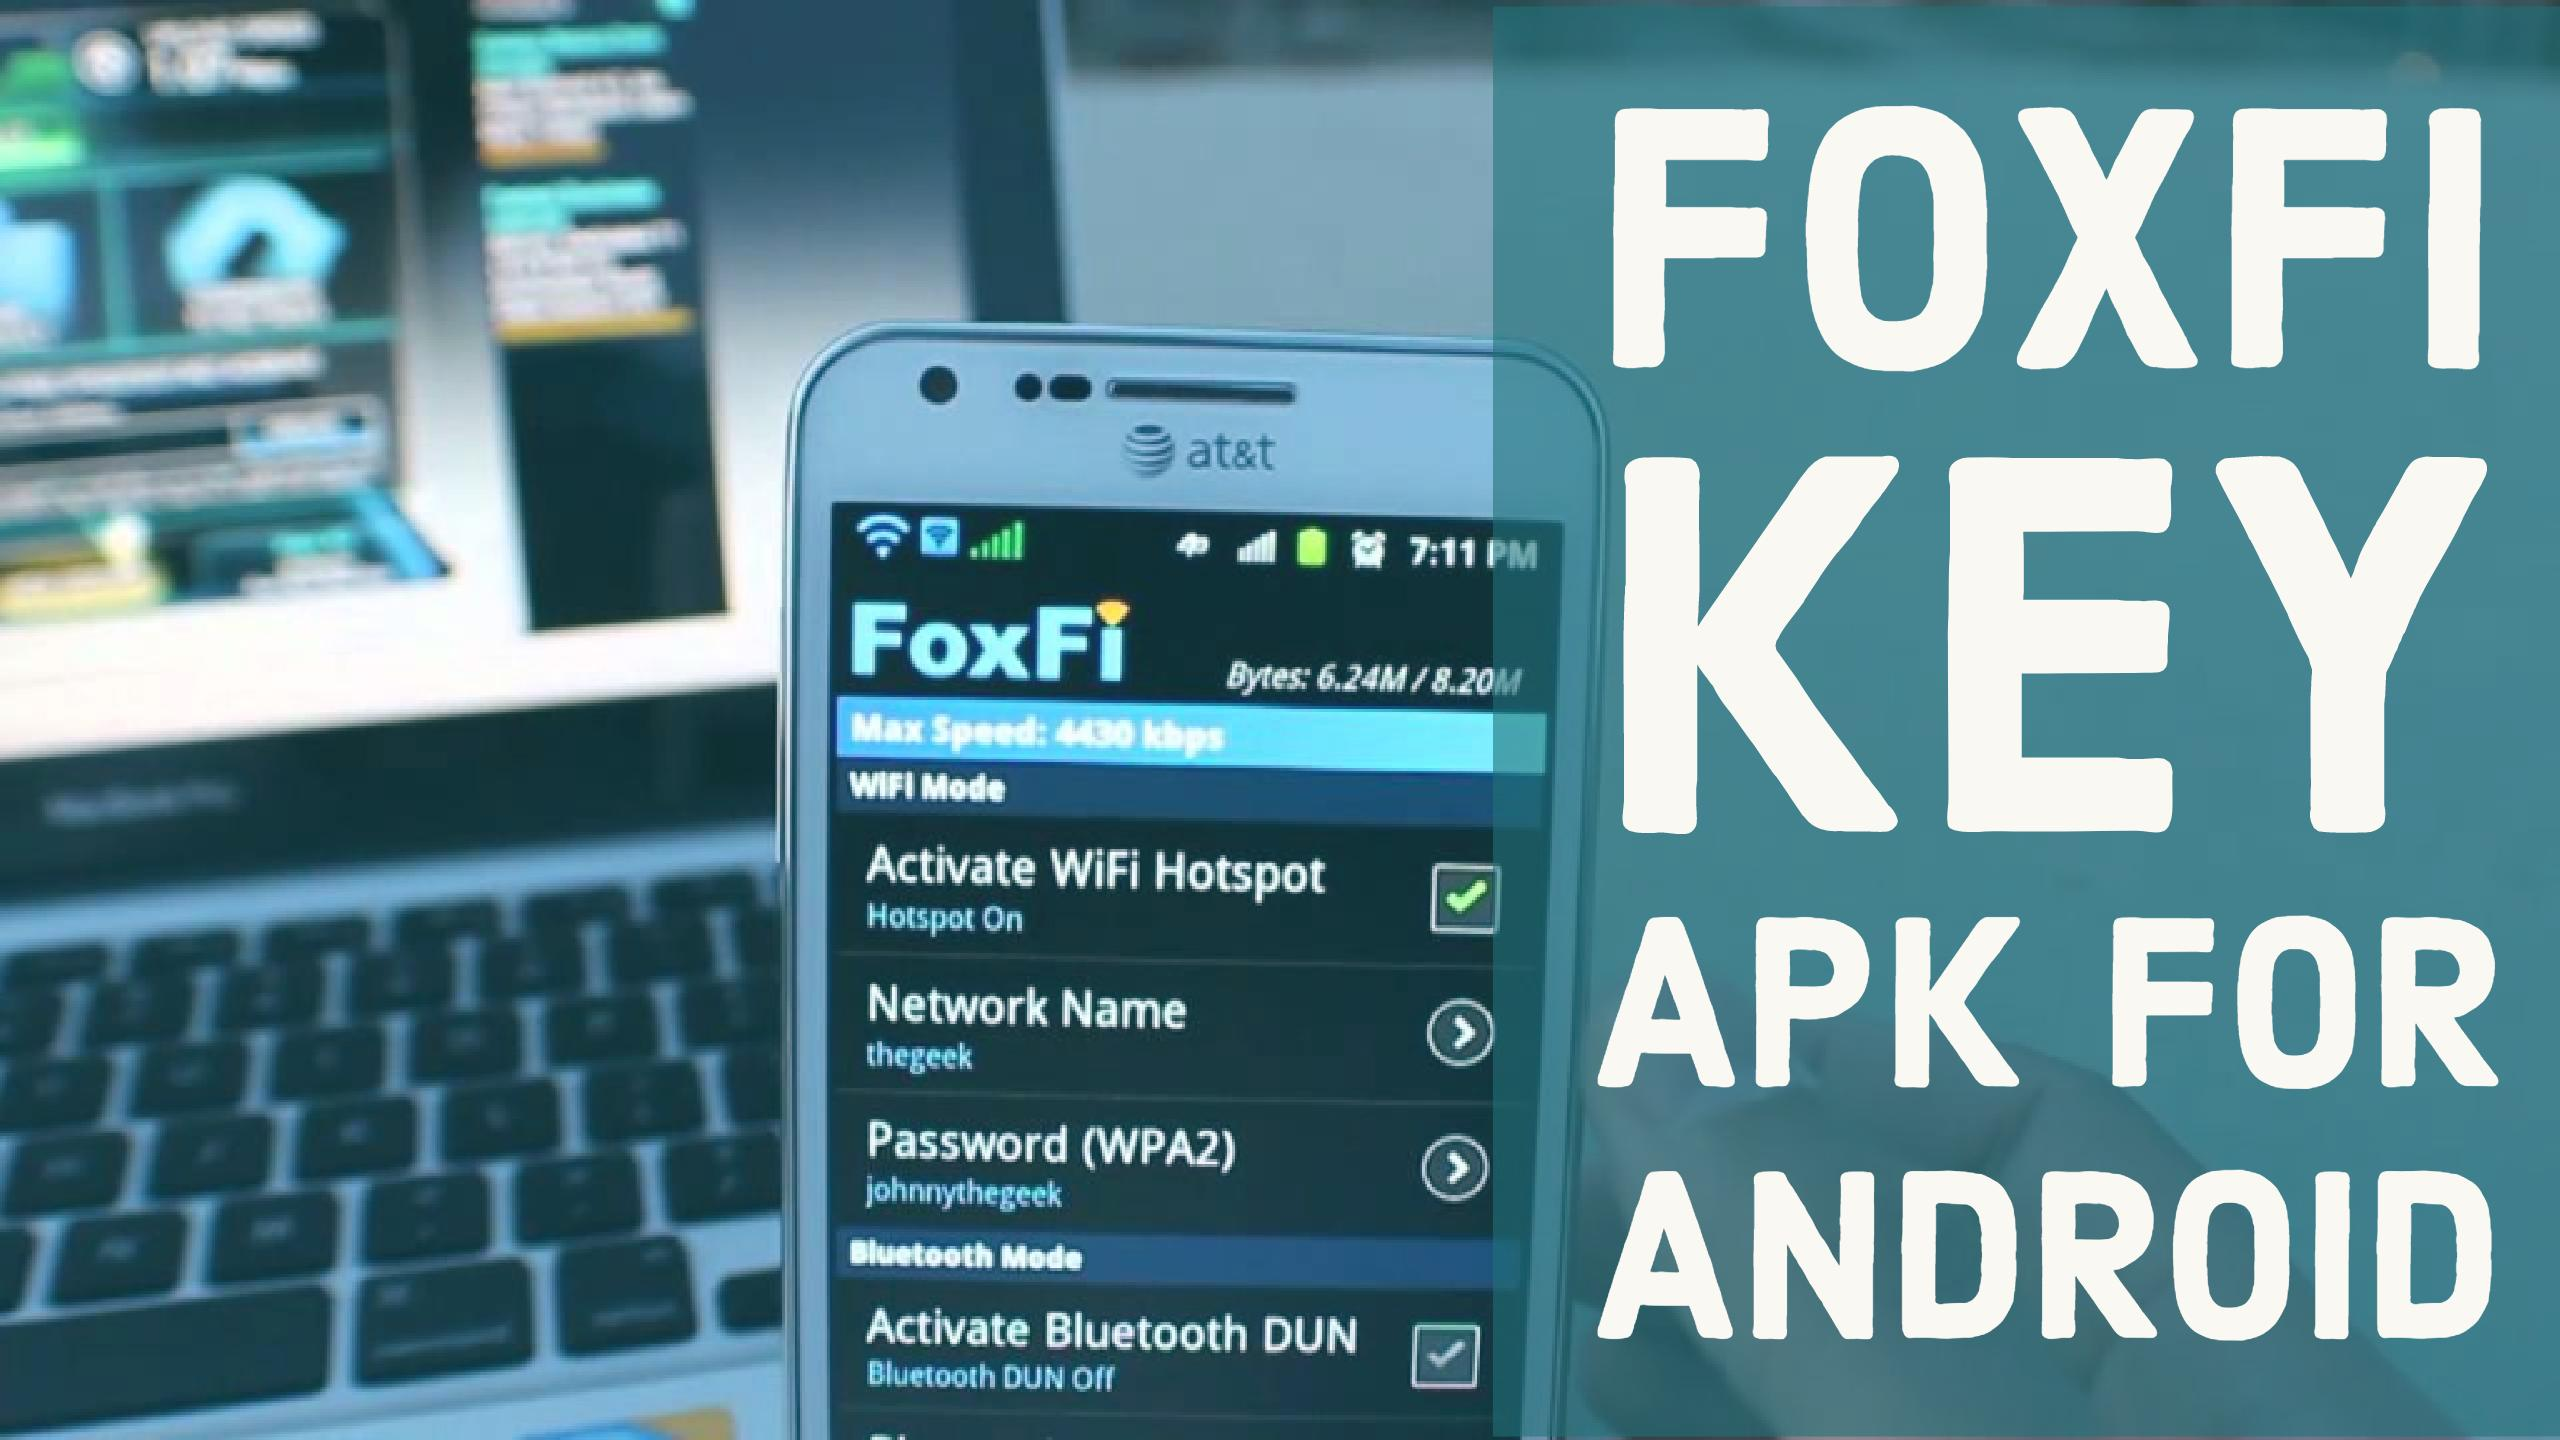 How to install FoxFi Key Apk Latest version for Android